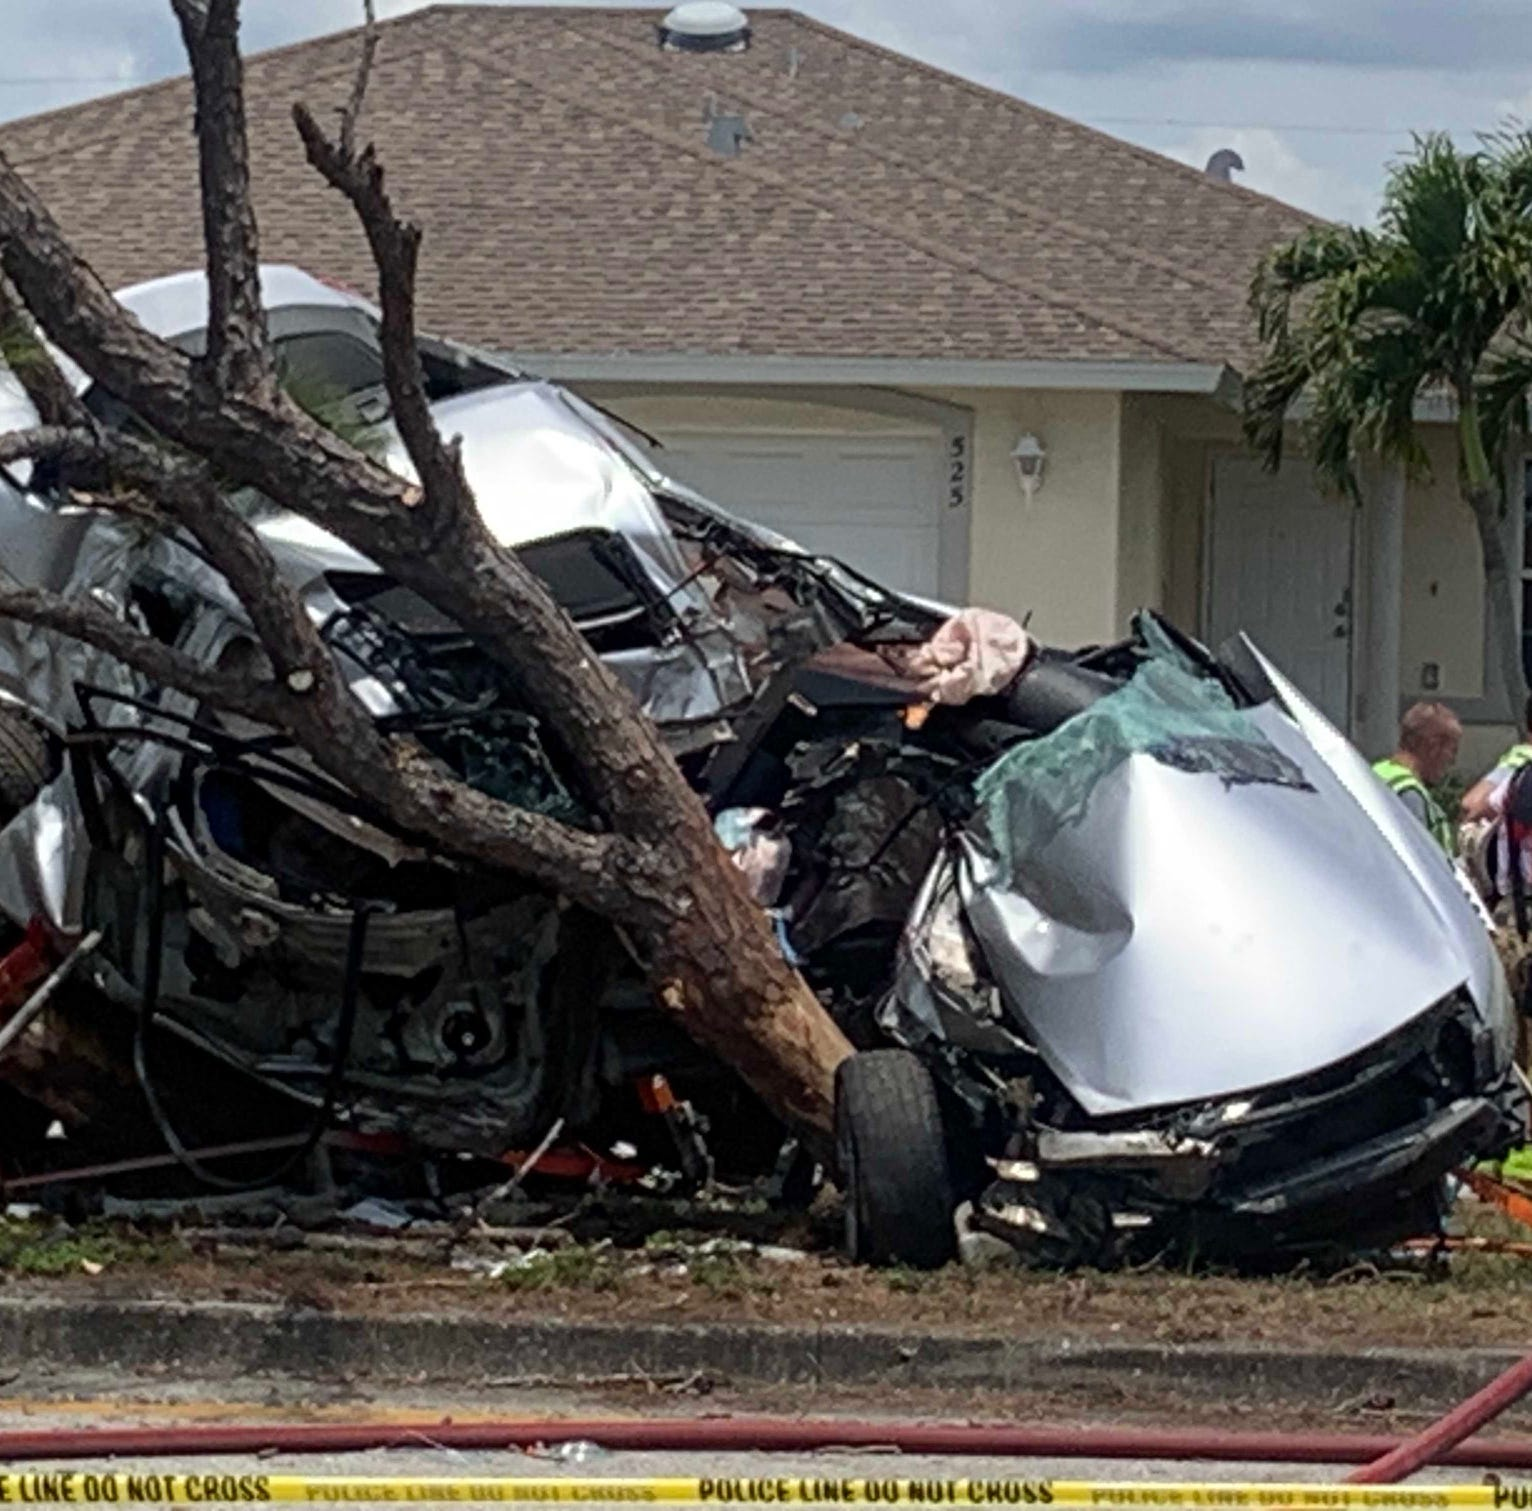 Serious crash with injuries closes portion of Hancock Bridge Parkway in Cape Coral